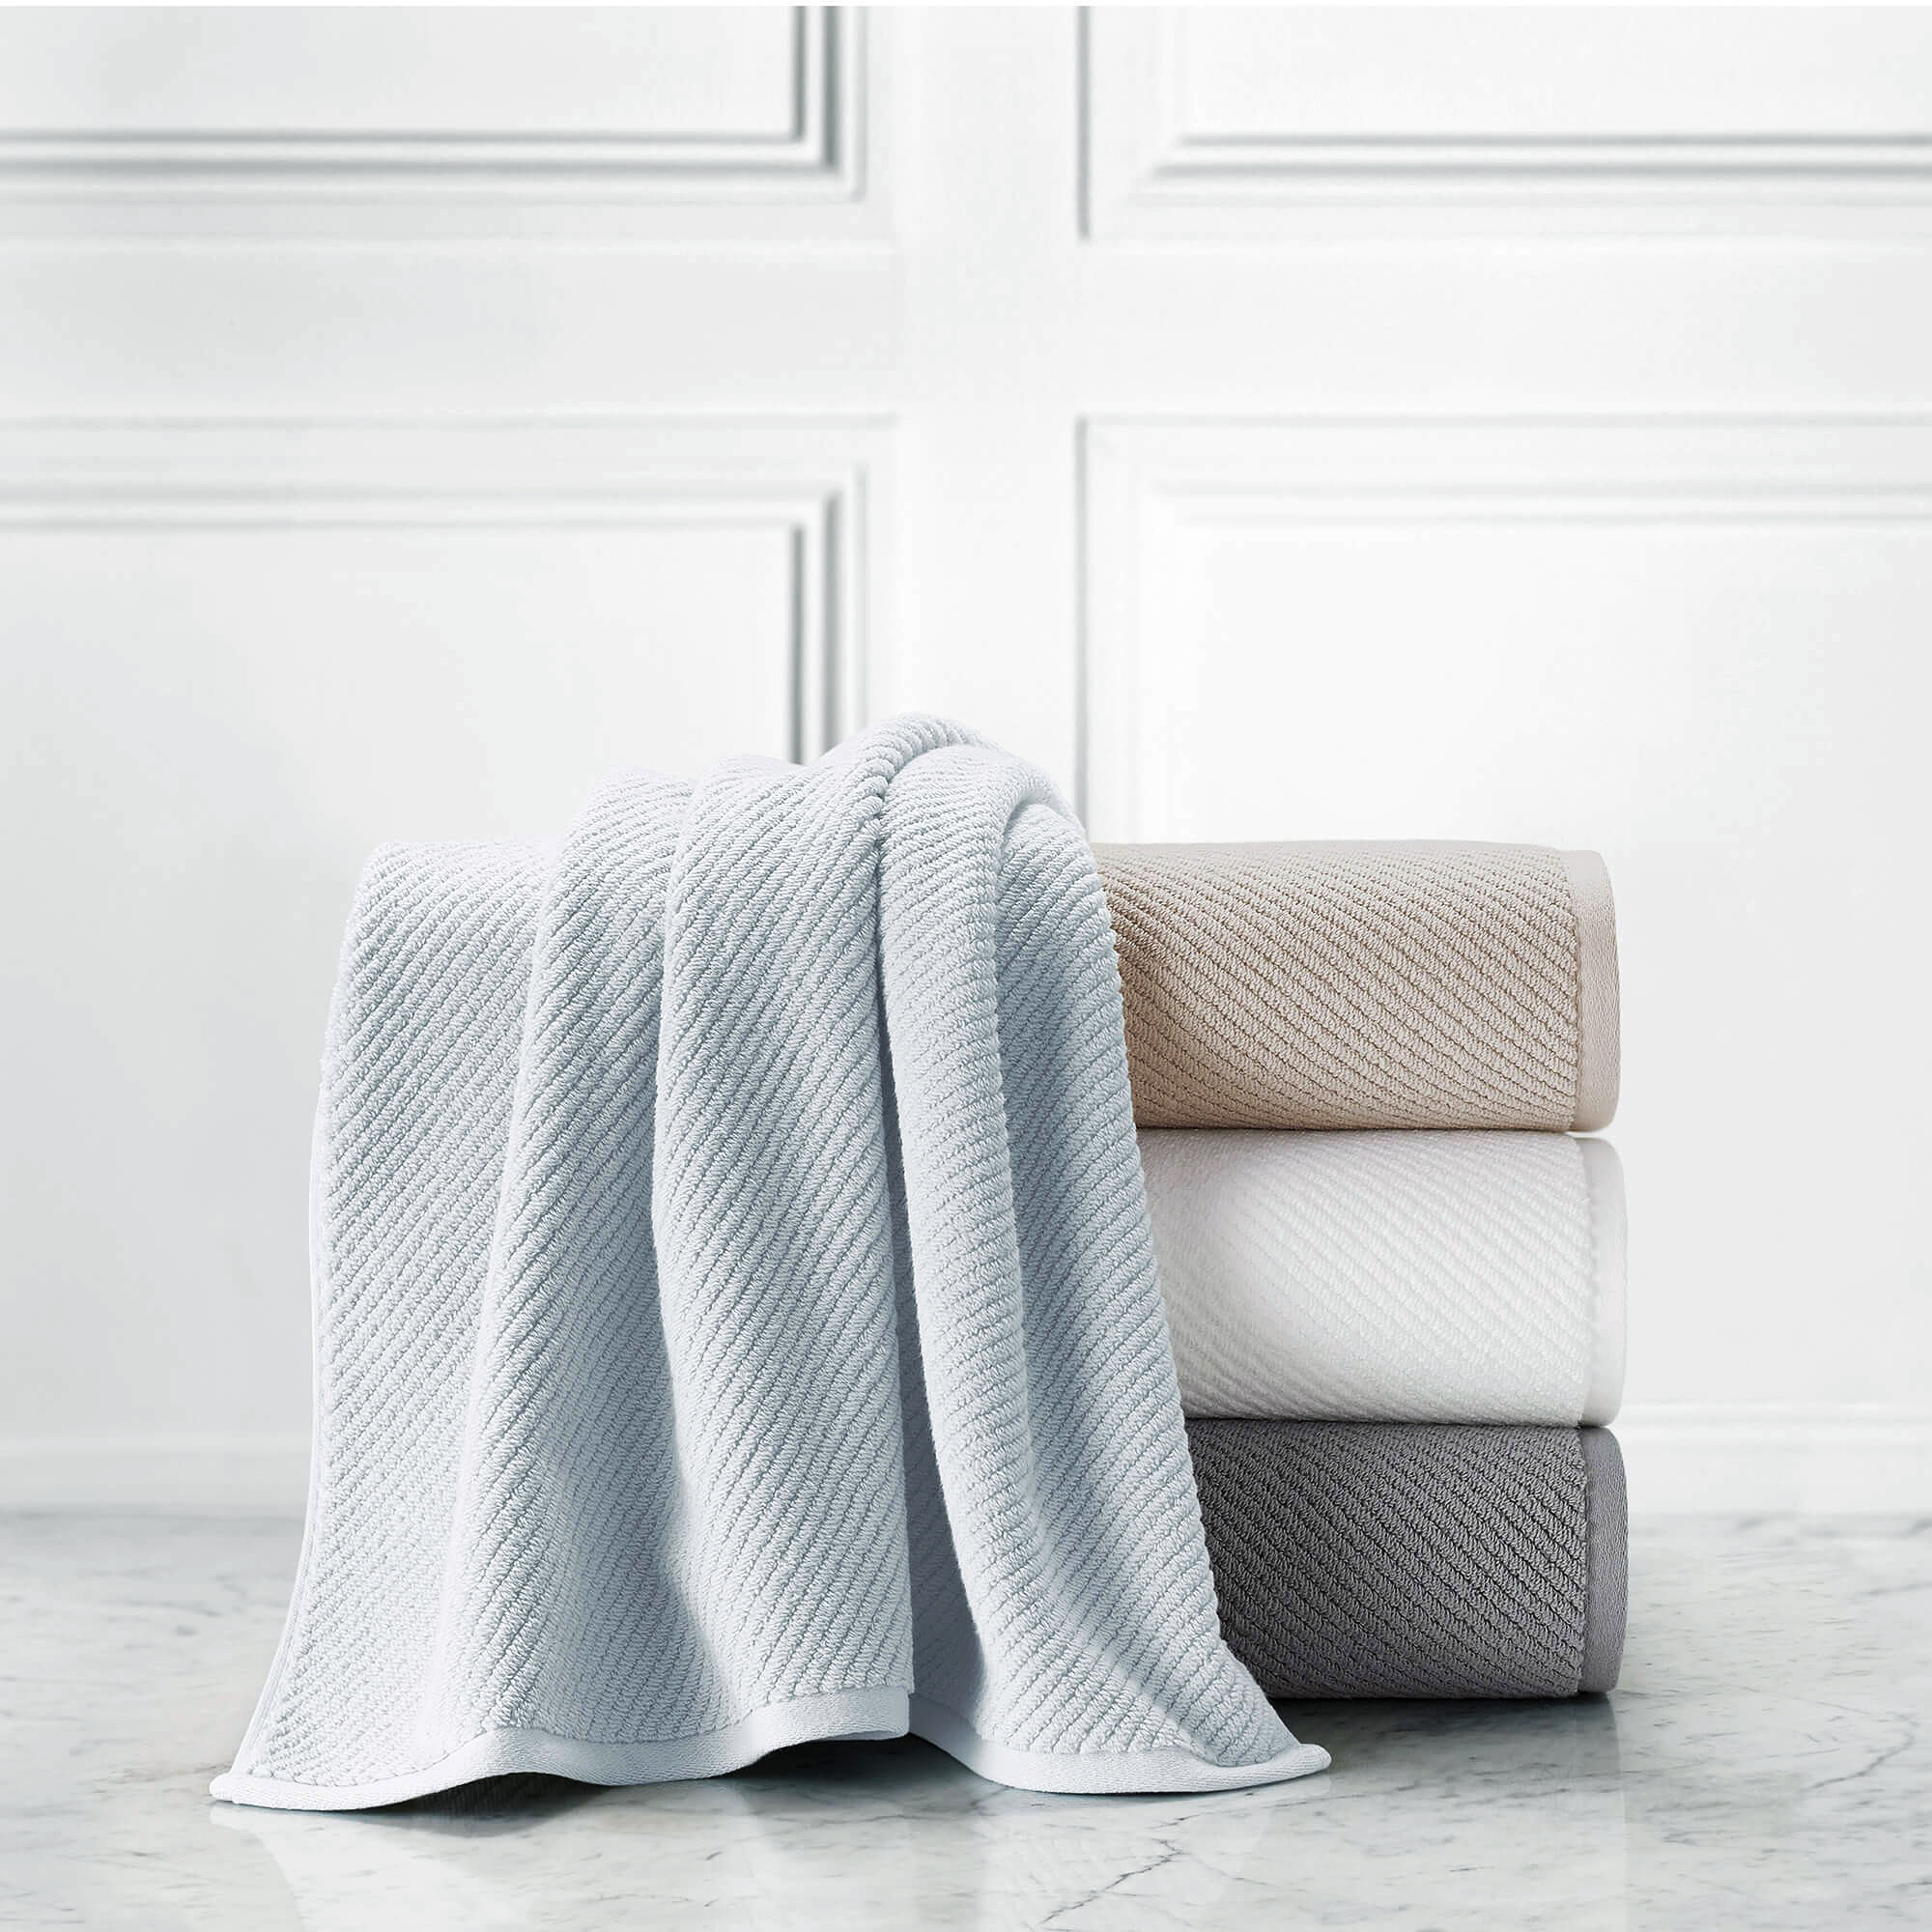 cotton anniversary gift ribbed towels